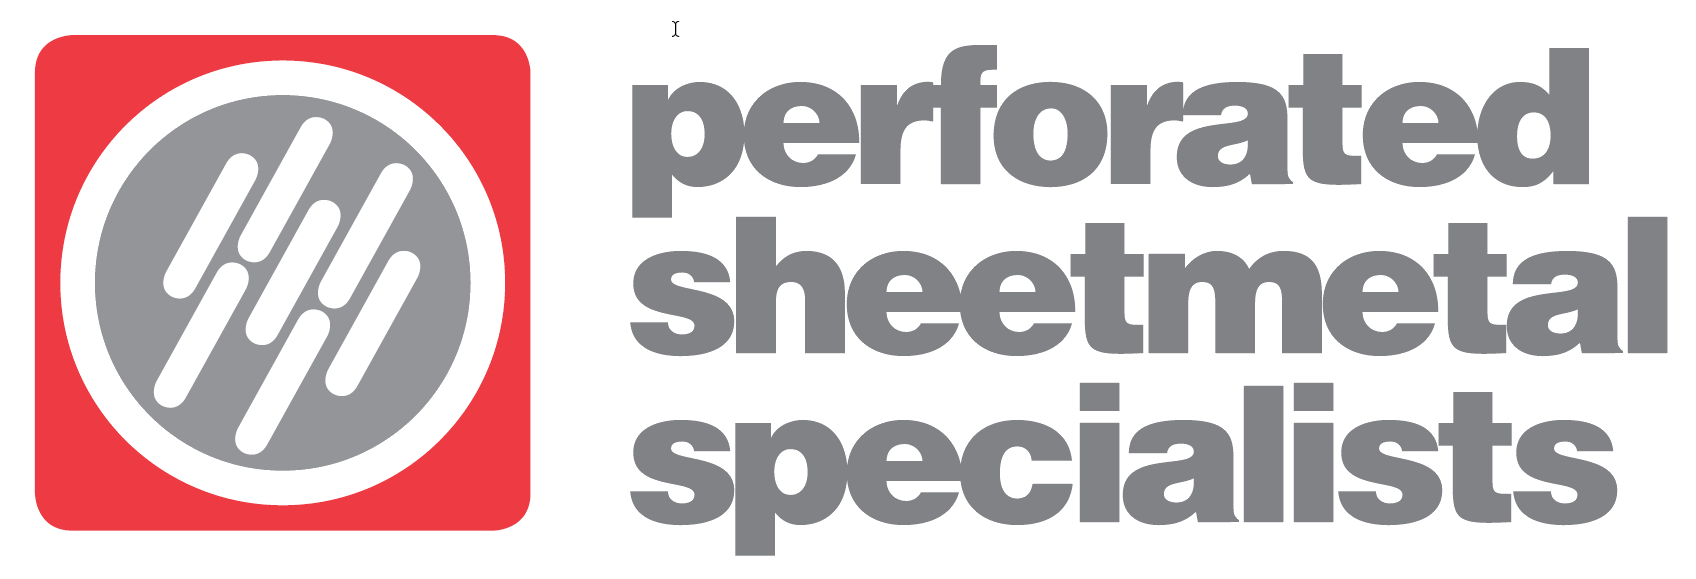 Expert Sheetmetal Engineers & Perforated Sheet Specialists